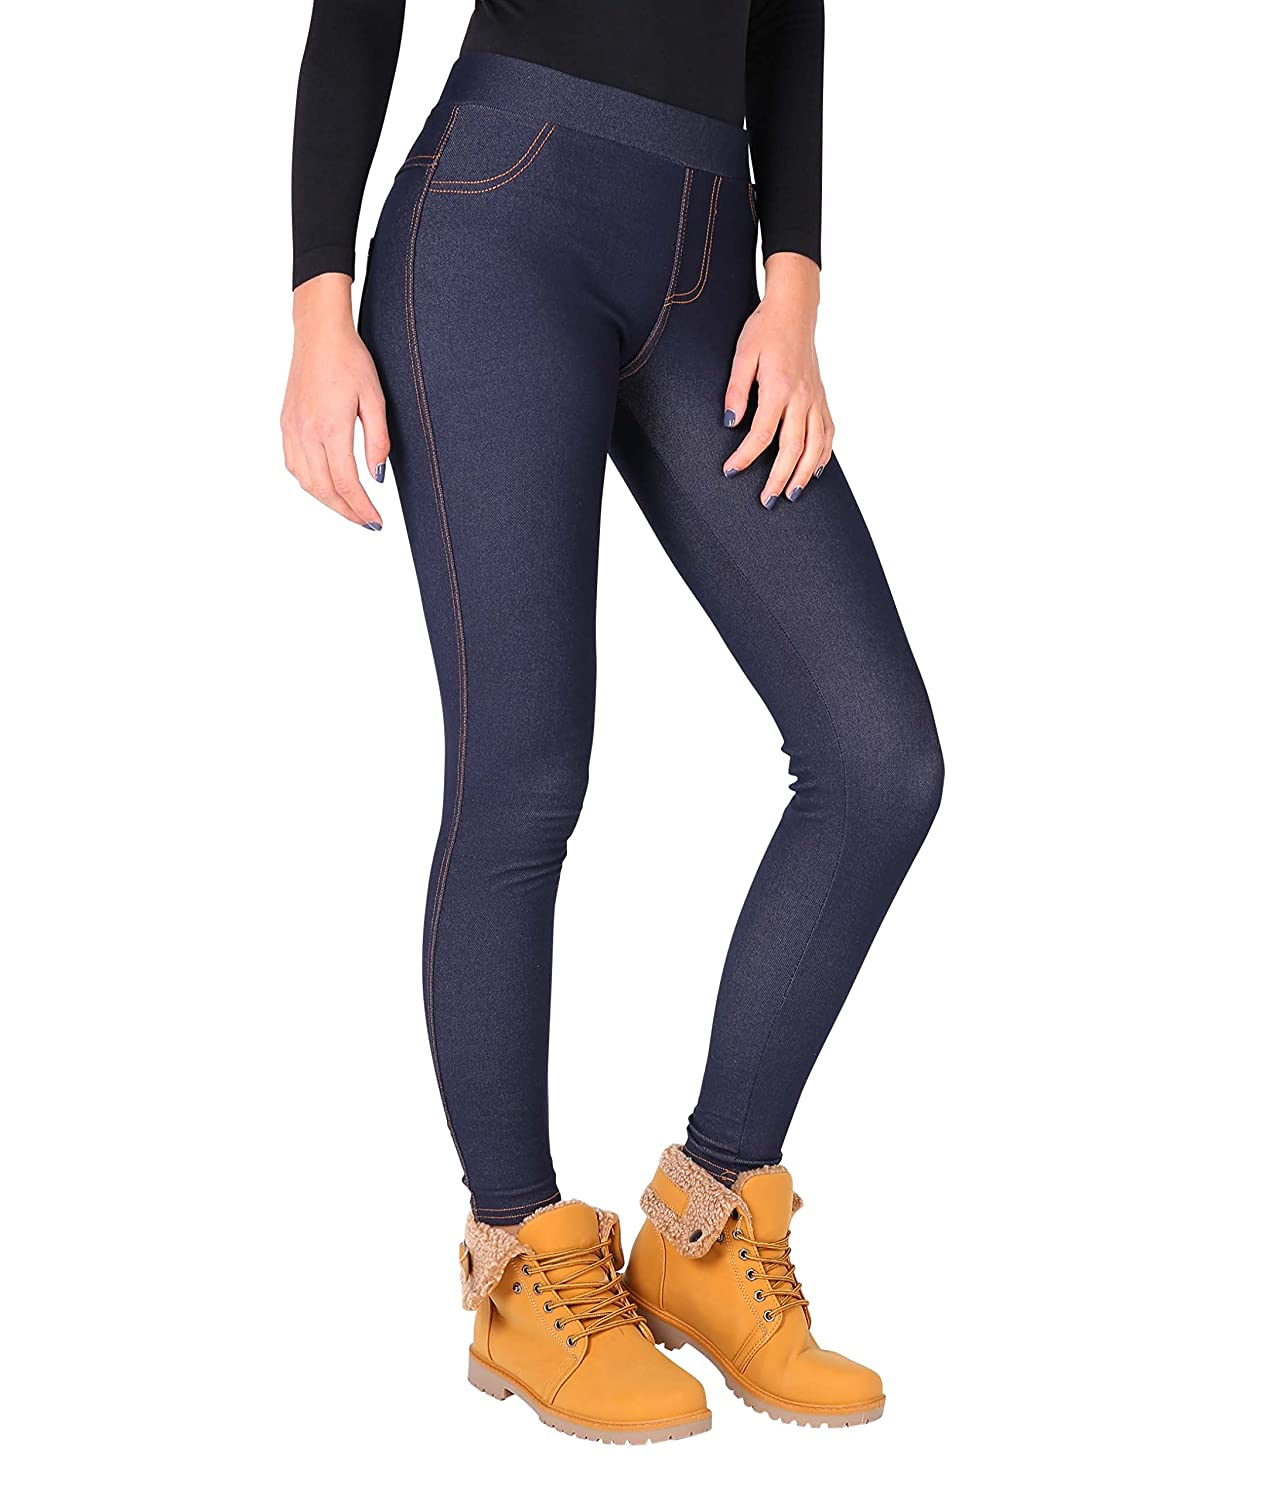 KRISP Damen Wet Look Leggings Hose in Leder Optik